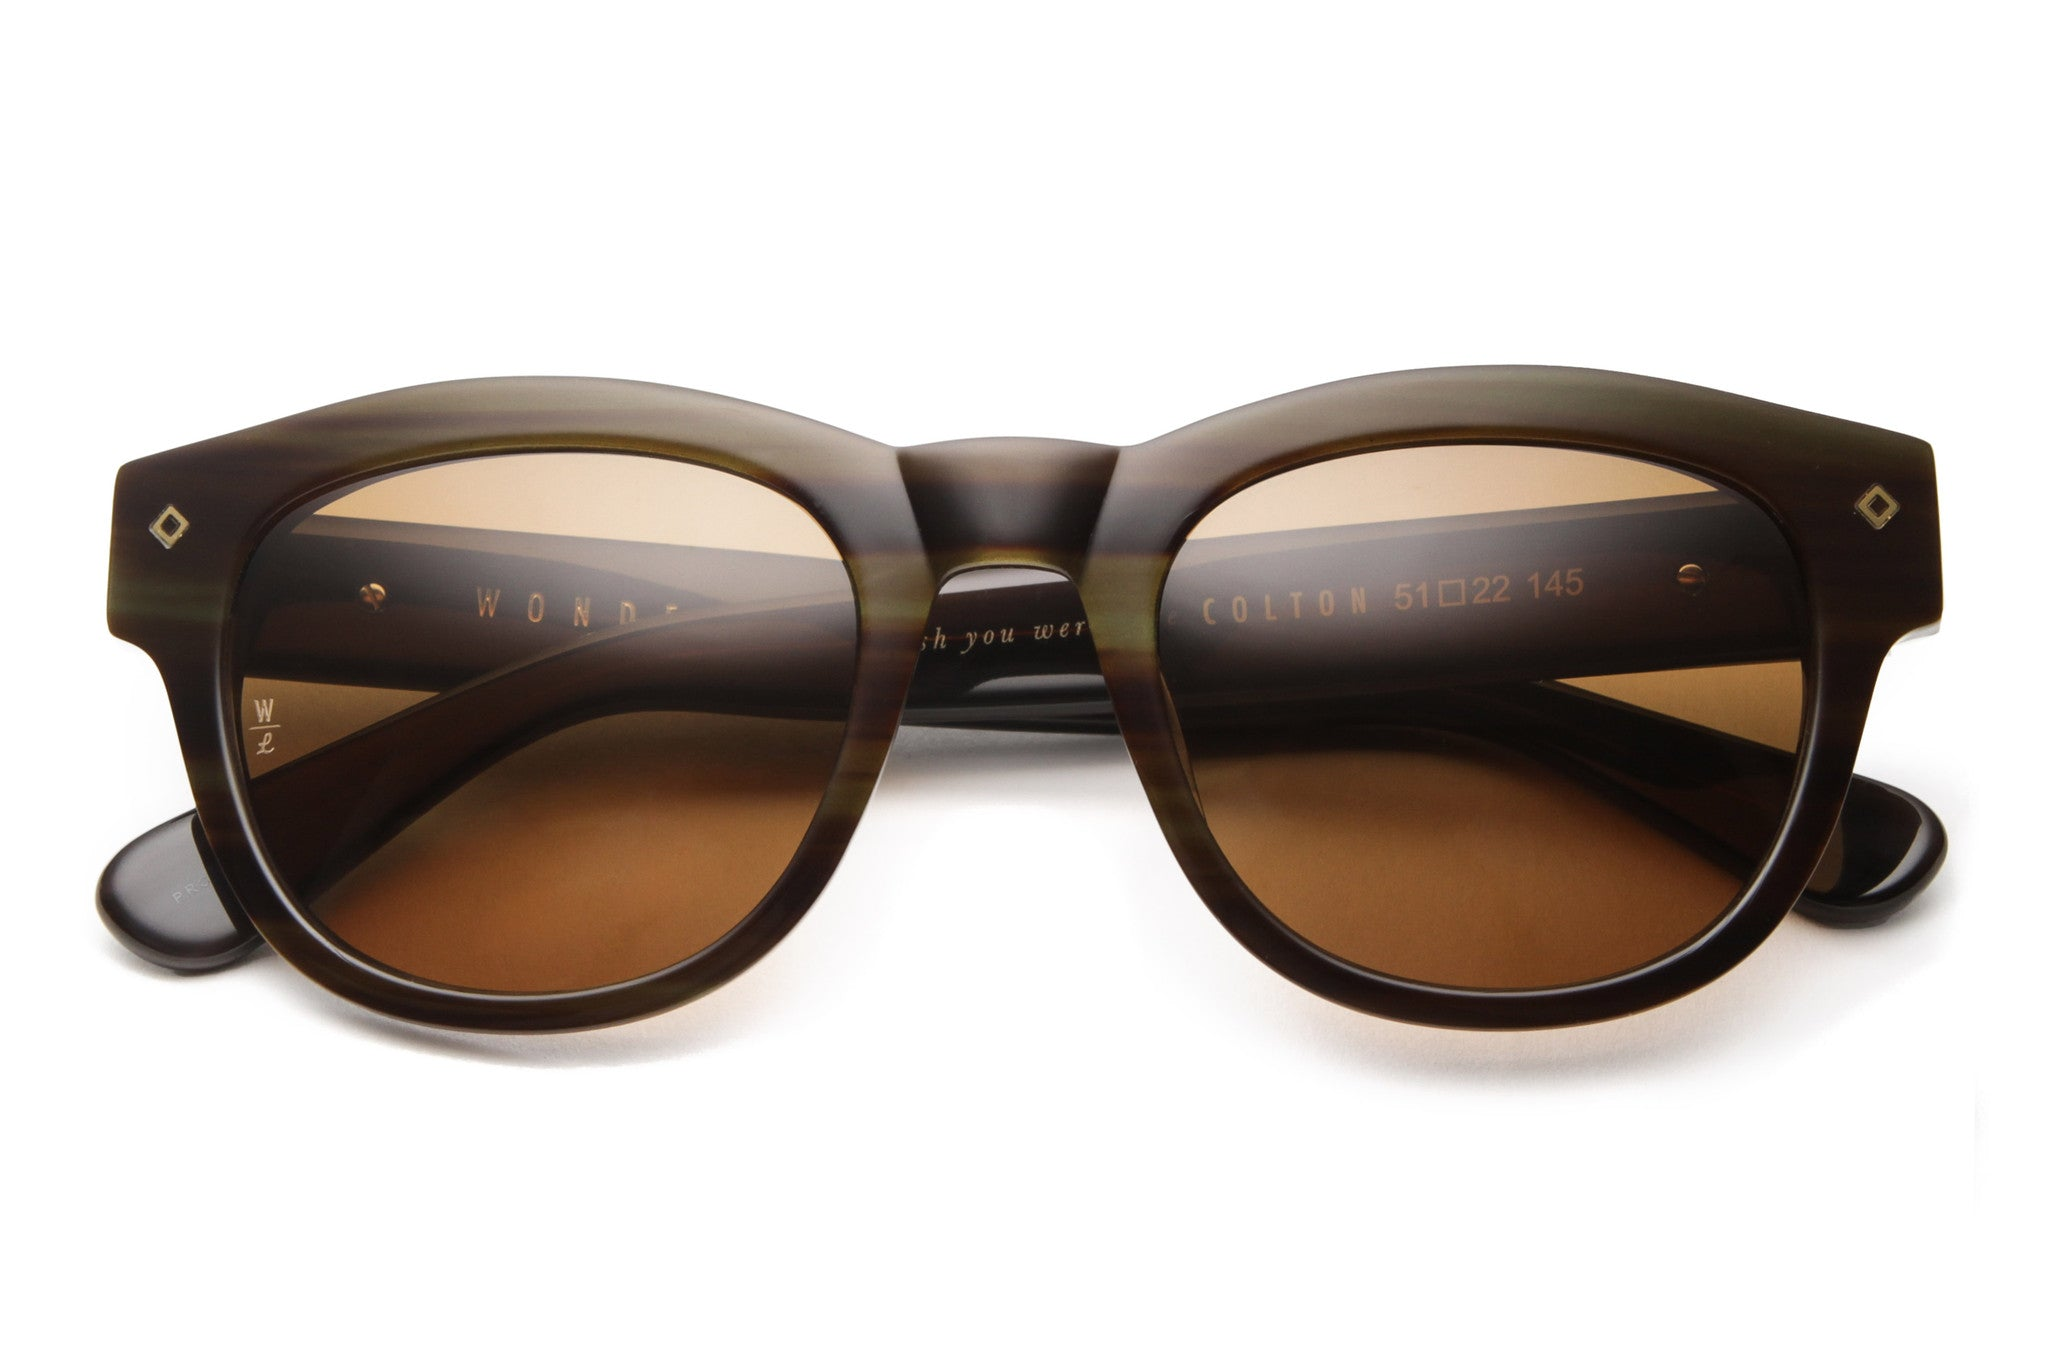 Colton Sunglasses (Dark Wood/Bronze CZ)